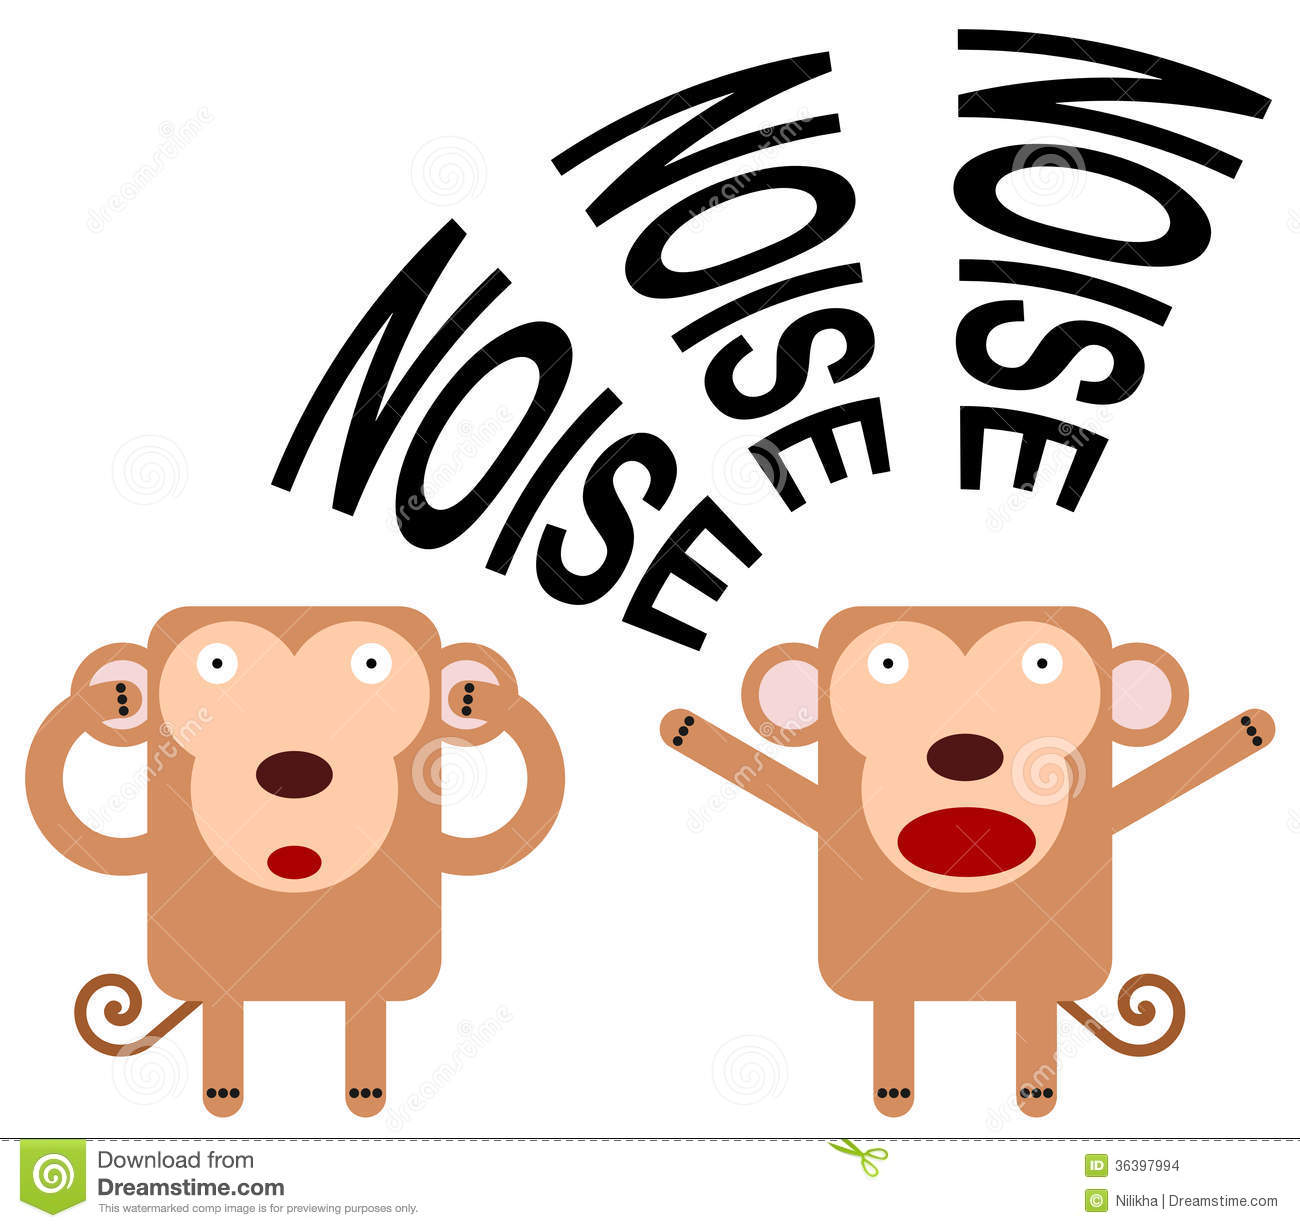 Noisy monkey stock illustratio...